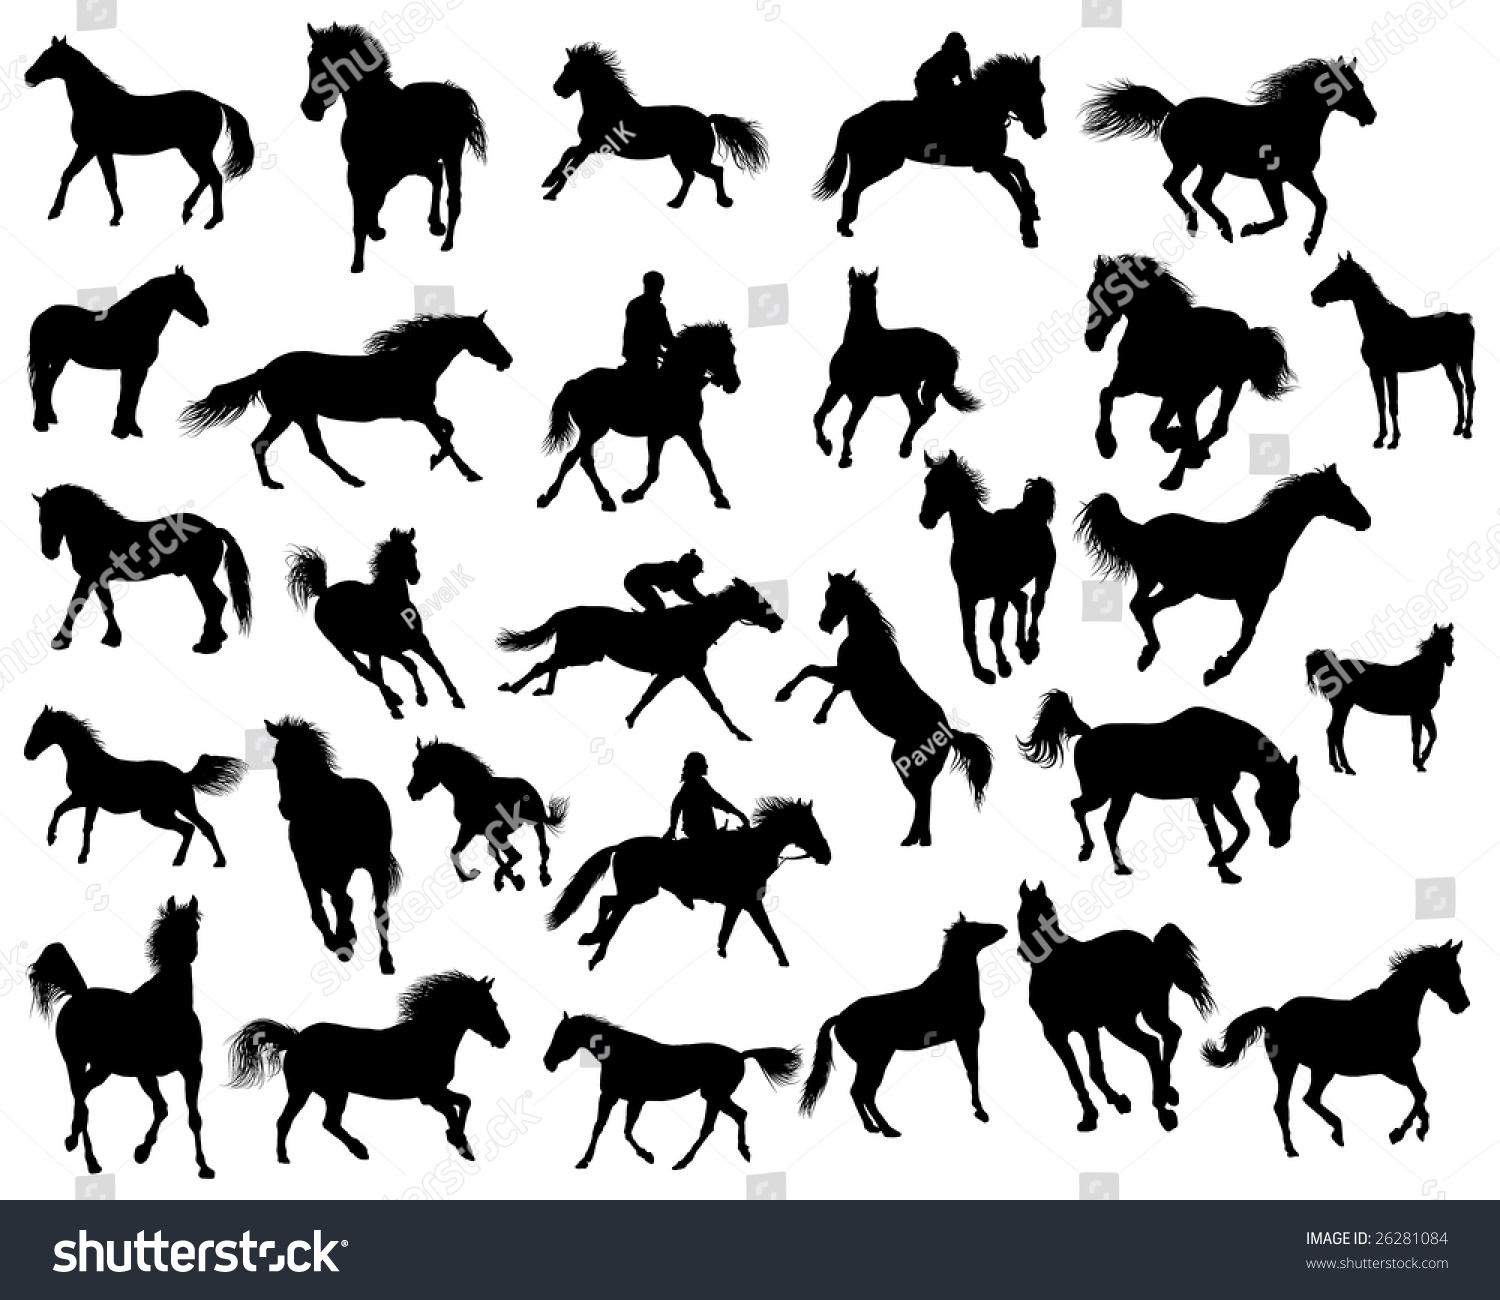 Running Horses Silhouette Wall Border Stock Vector Big Set Of Horses Silhouettes In